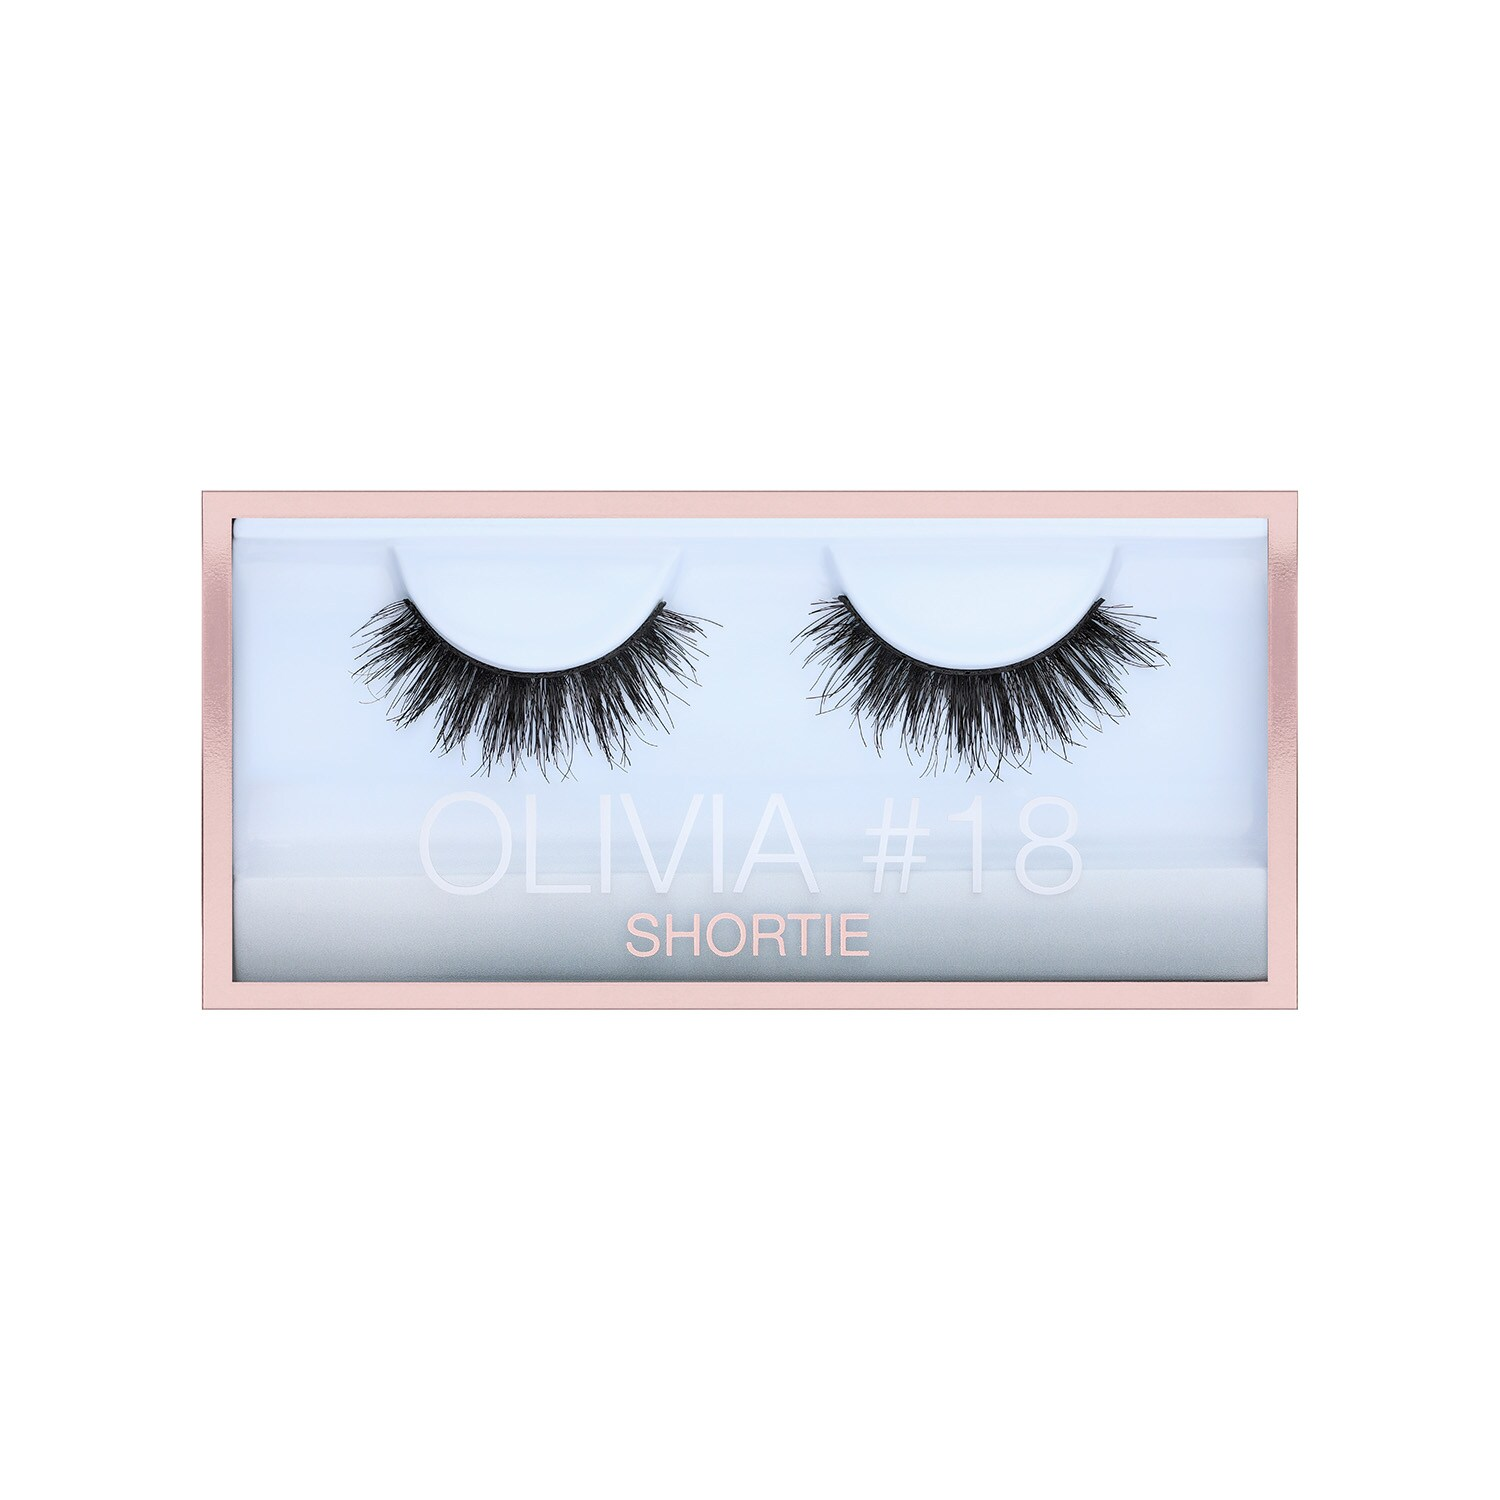 Faux Cils Olivia #18 - Collection Shortie